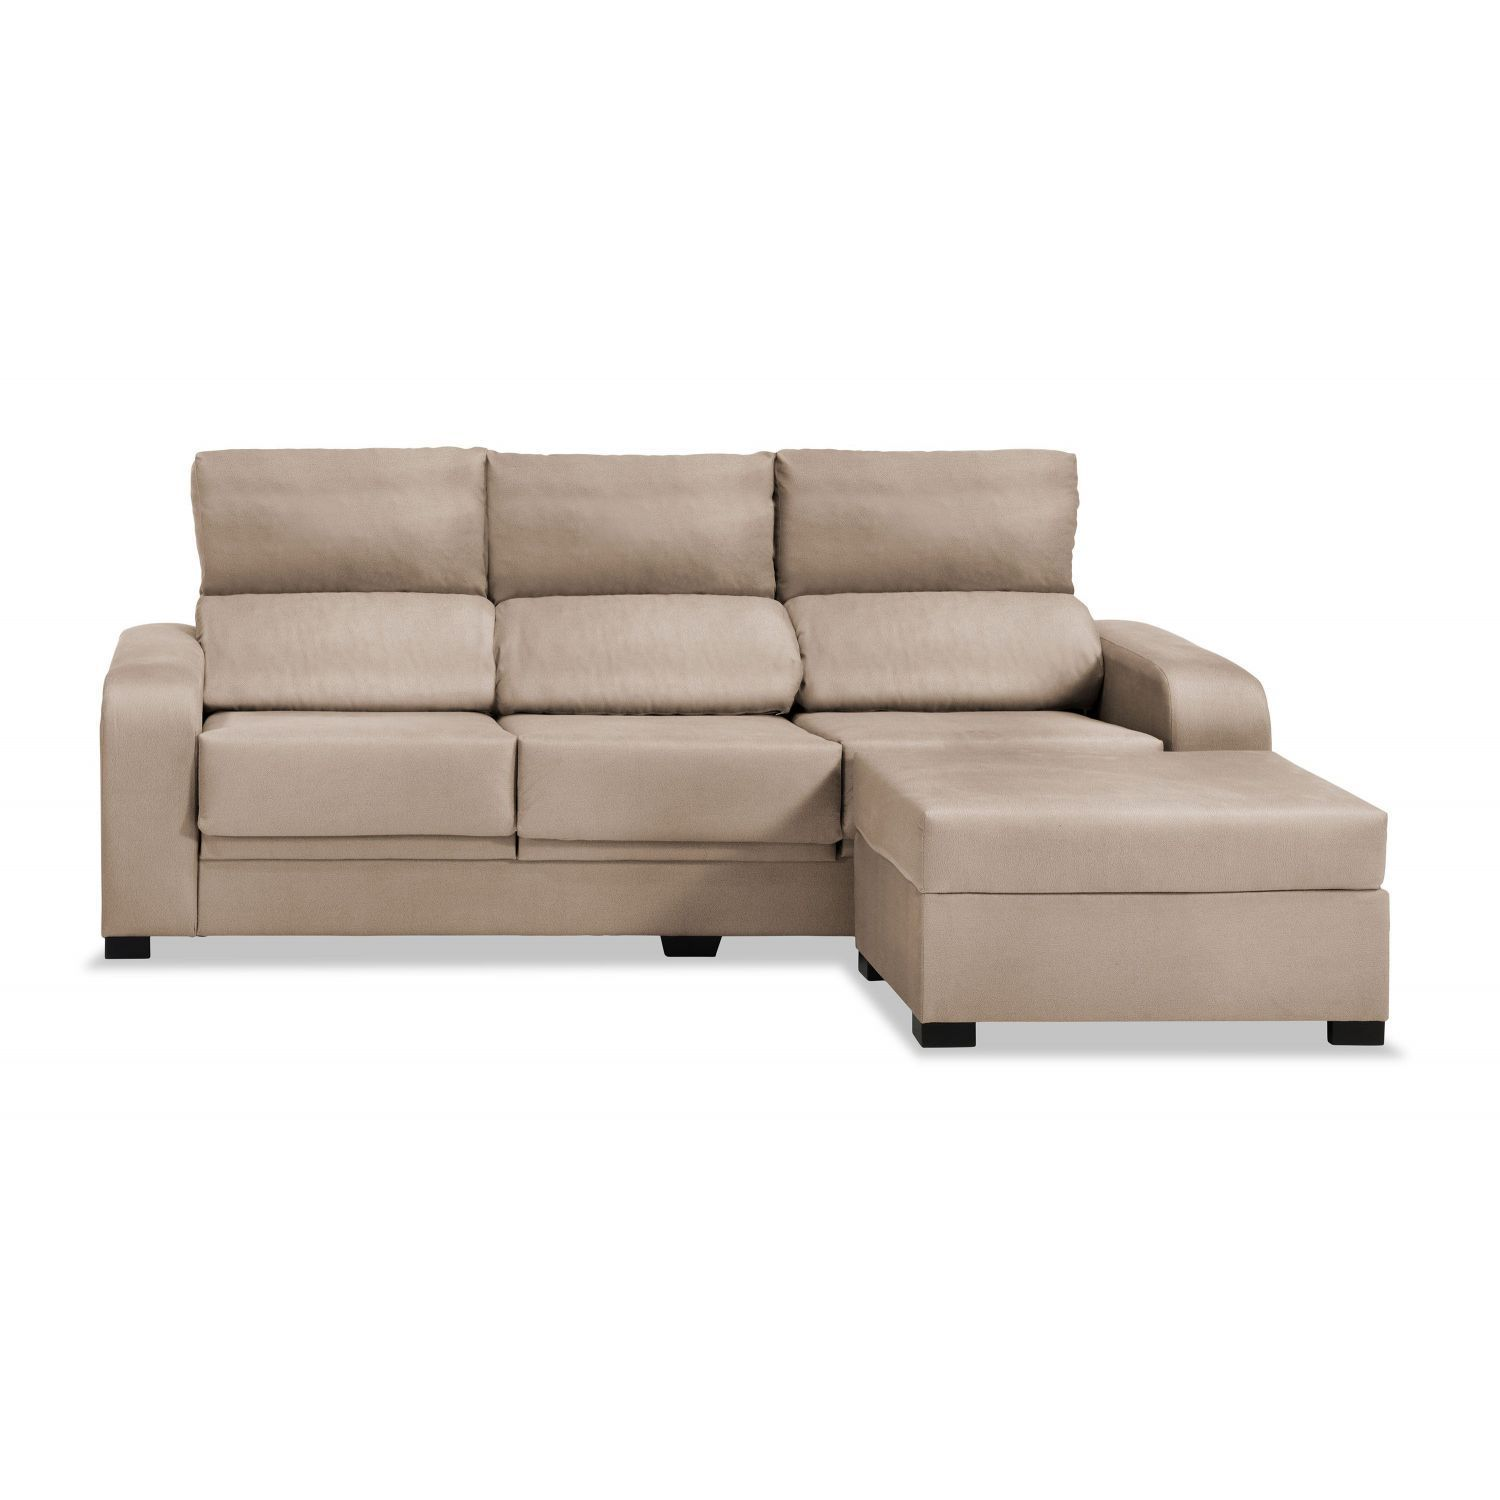 sofa clearance london end table ideas sofá chaise longue beige reclinable extensible 220 cm